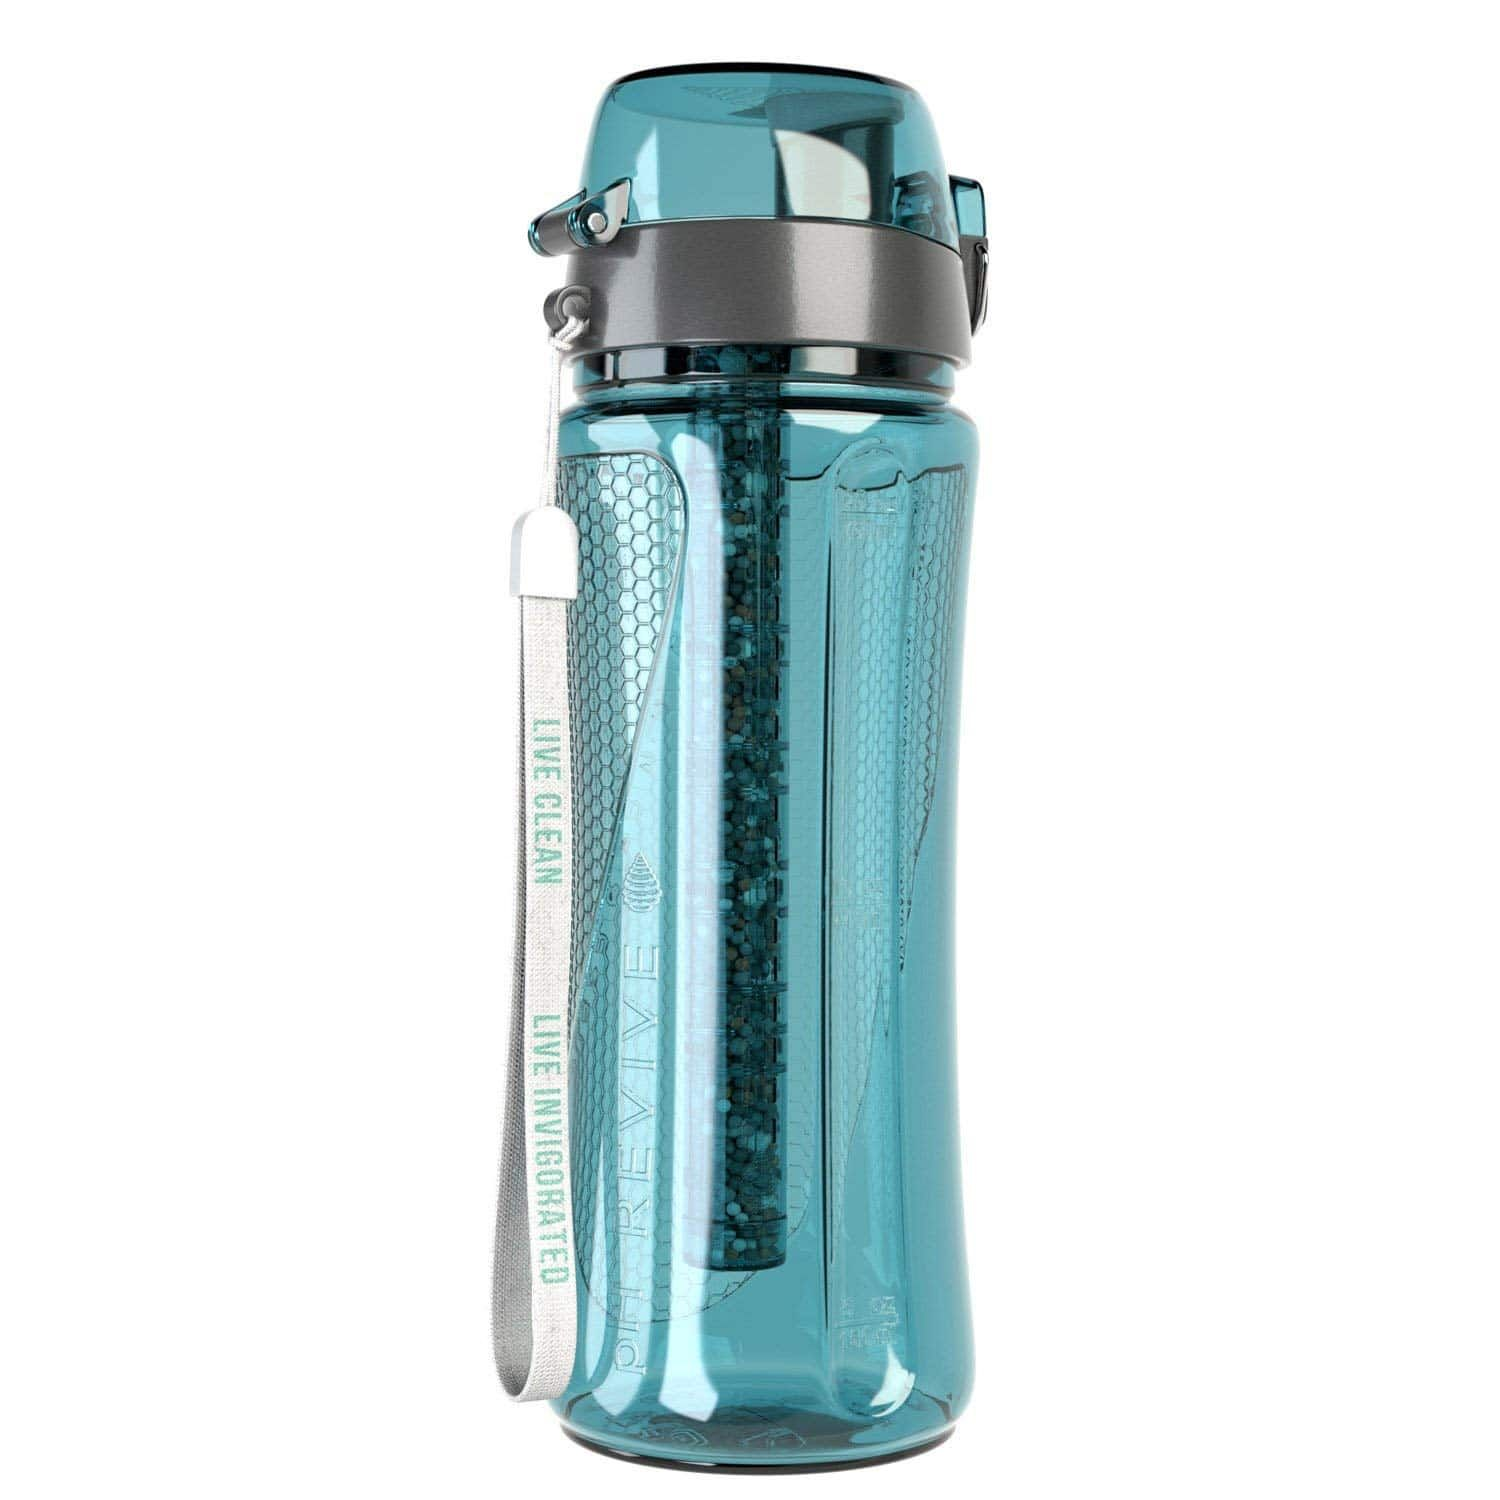 Top 10 Best Survival Water Filters In 2020 Emergency Filter Straw For Hiking Backpacking Outdoor And Survival Hqreview Alkaline Water Bottle Filtered Water Bottle Best Alkaline Water